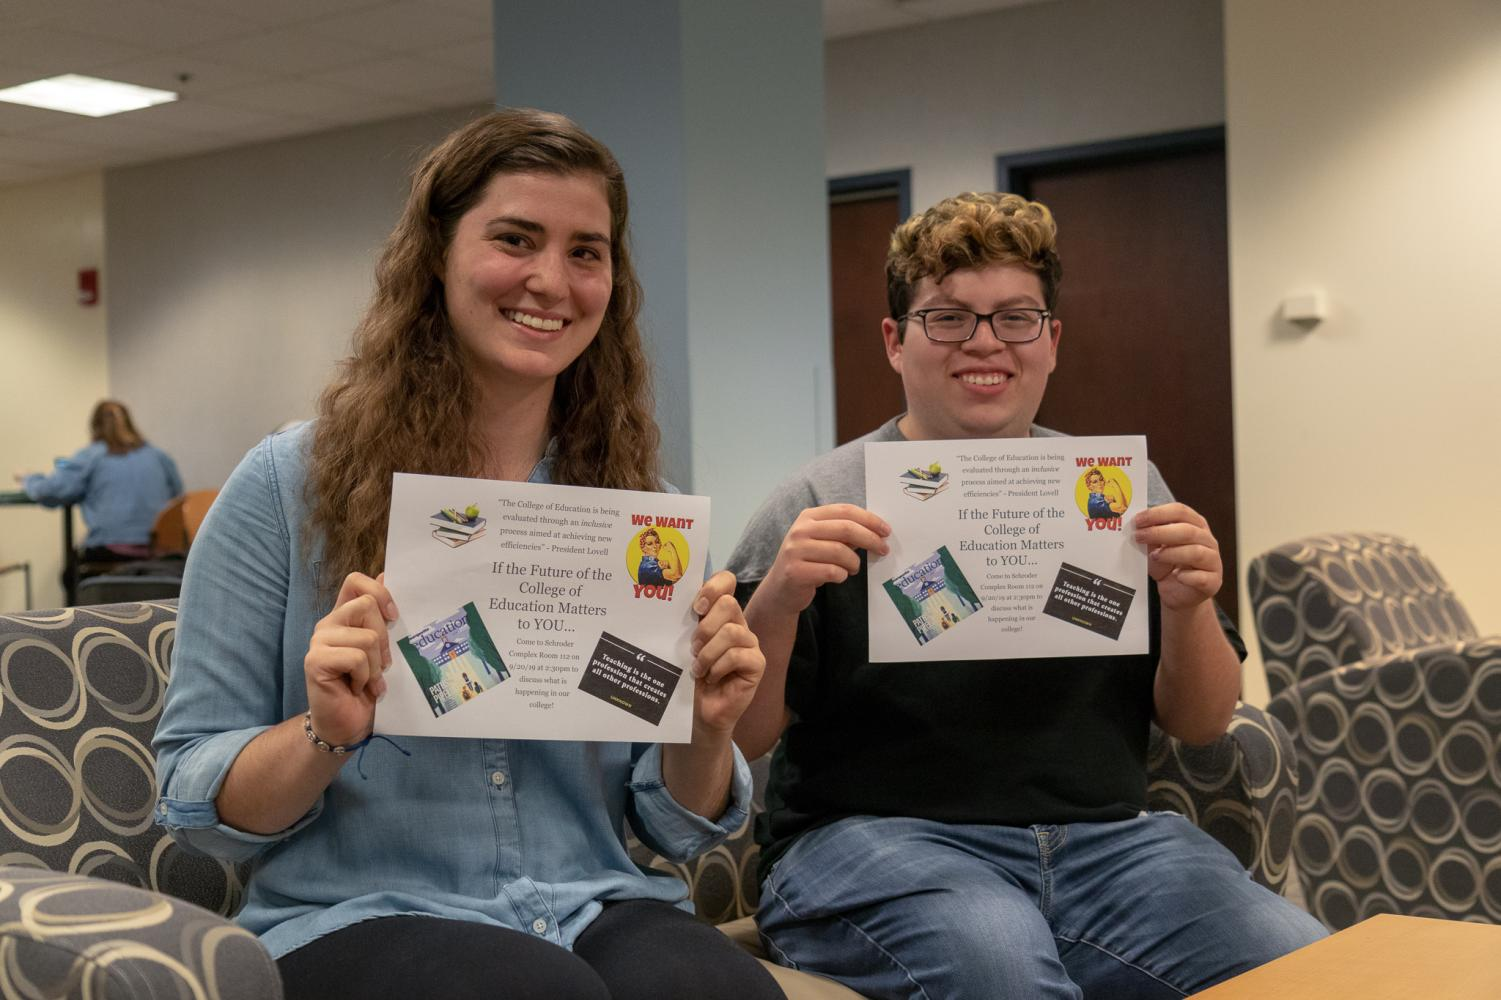 Brooke McArdle and Jonathon Jimenez hold fliers they created for an event this Friday to talk about the future of the College of Education.